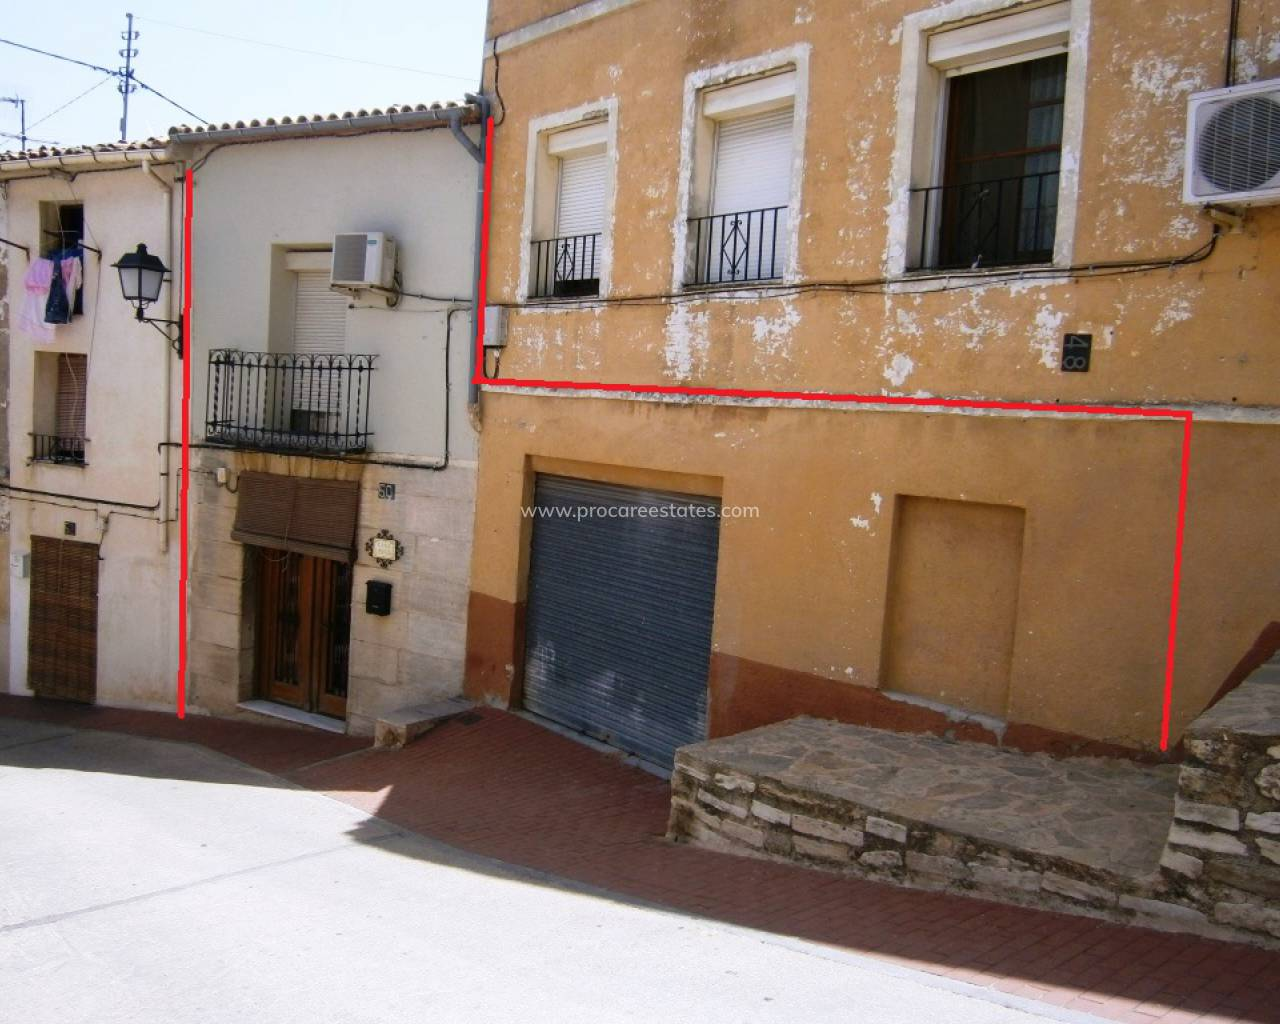 Townhouse - Revente - Cocentaina - Cocentaina